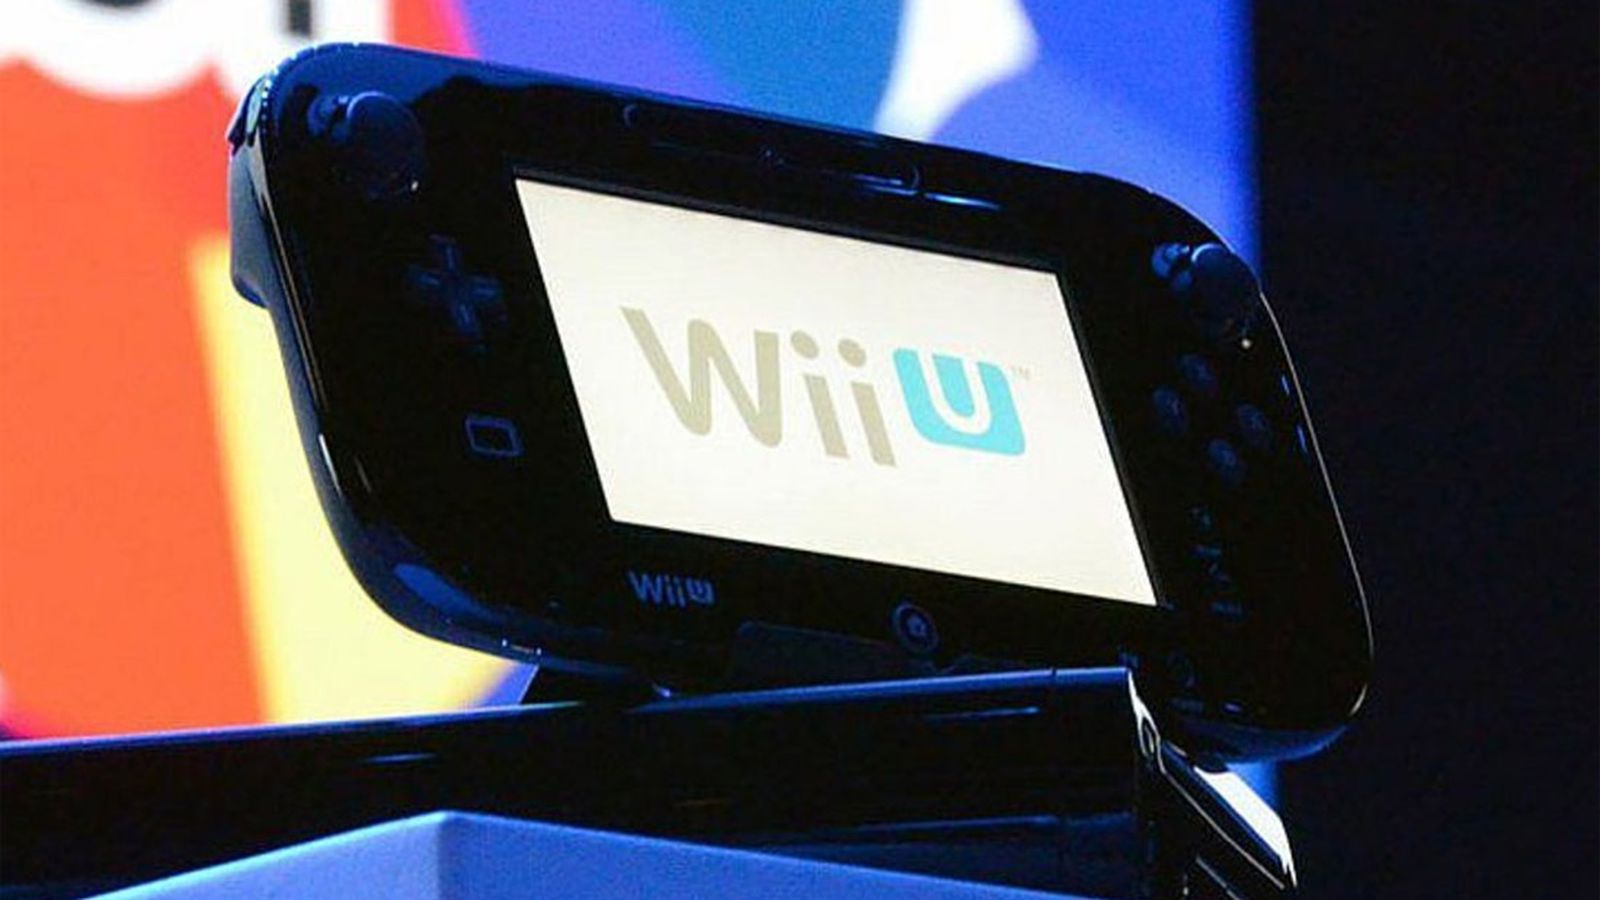 Wii U production could continue until 2018, Nintendo confirms ...